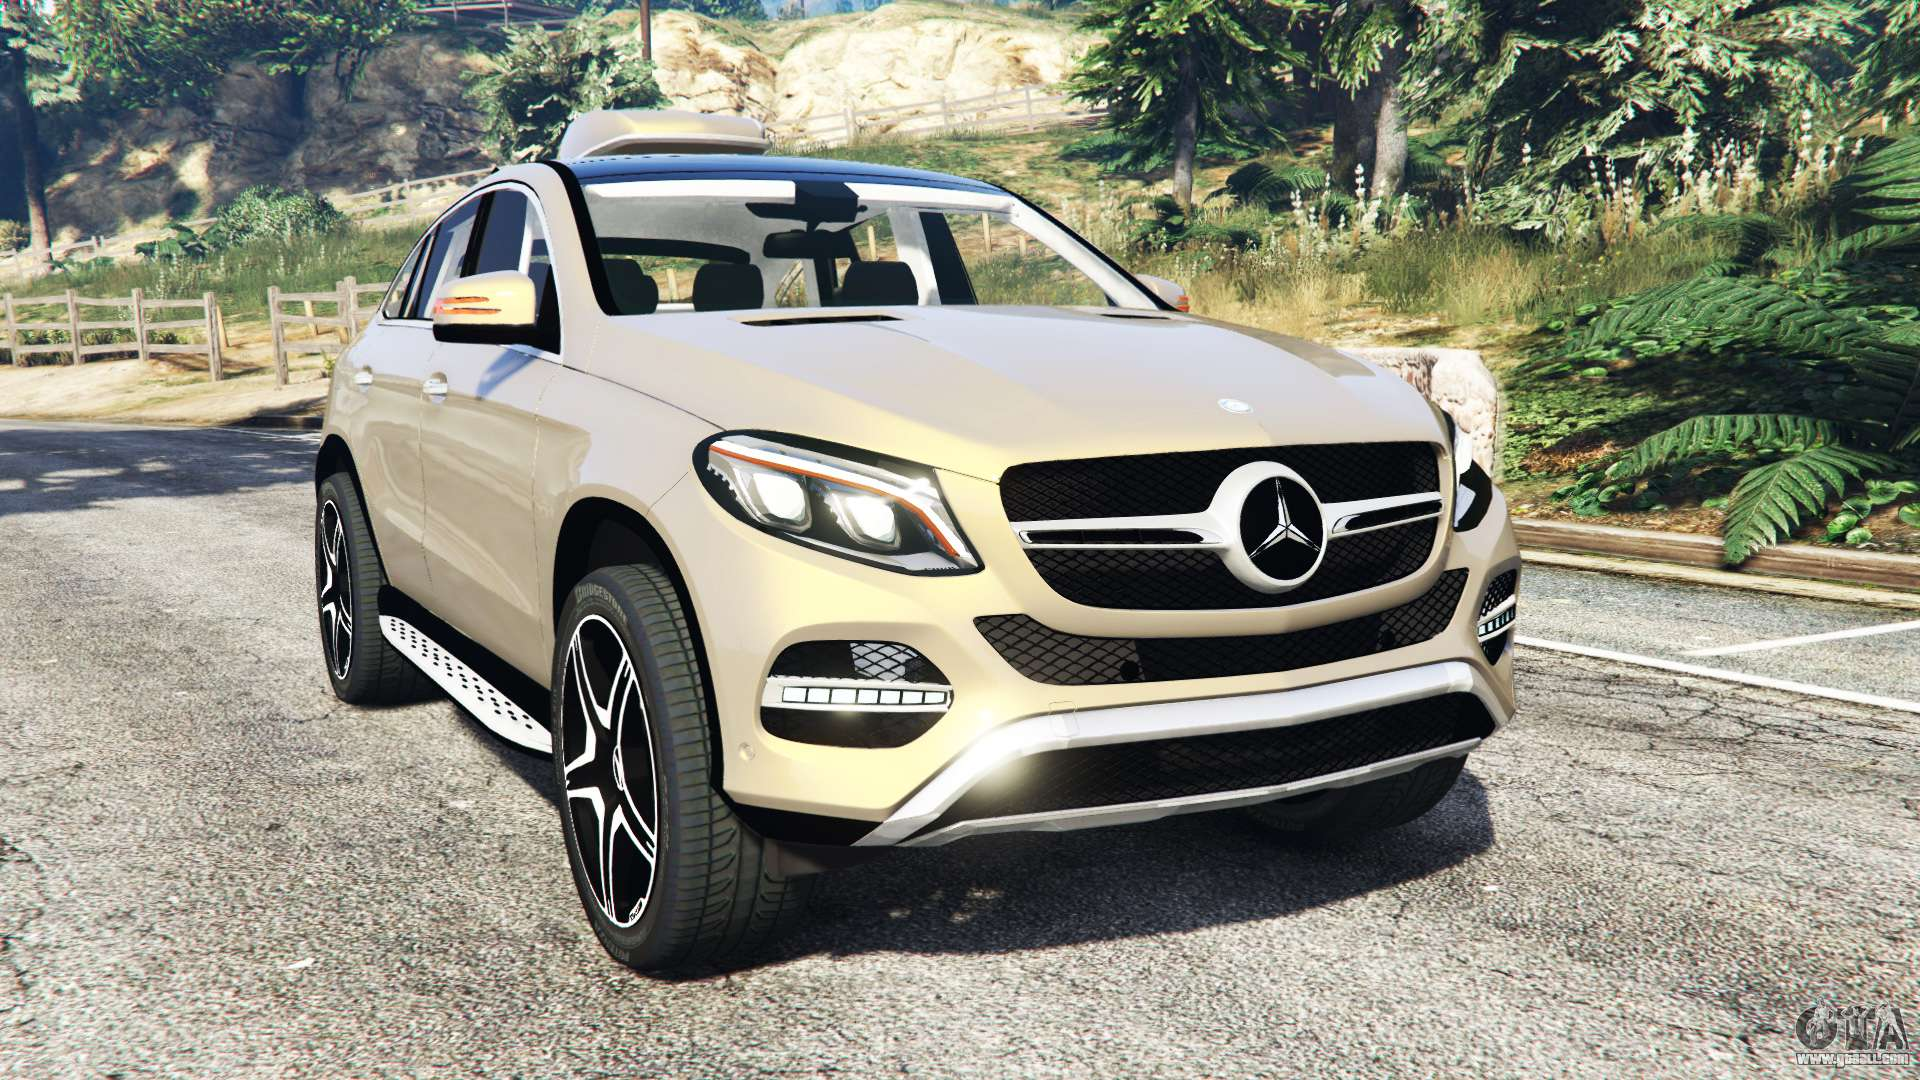 Mercedes benz gle 450 amg 4matic c292 add on for gta 5 for Mercedes benz gle 450